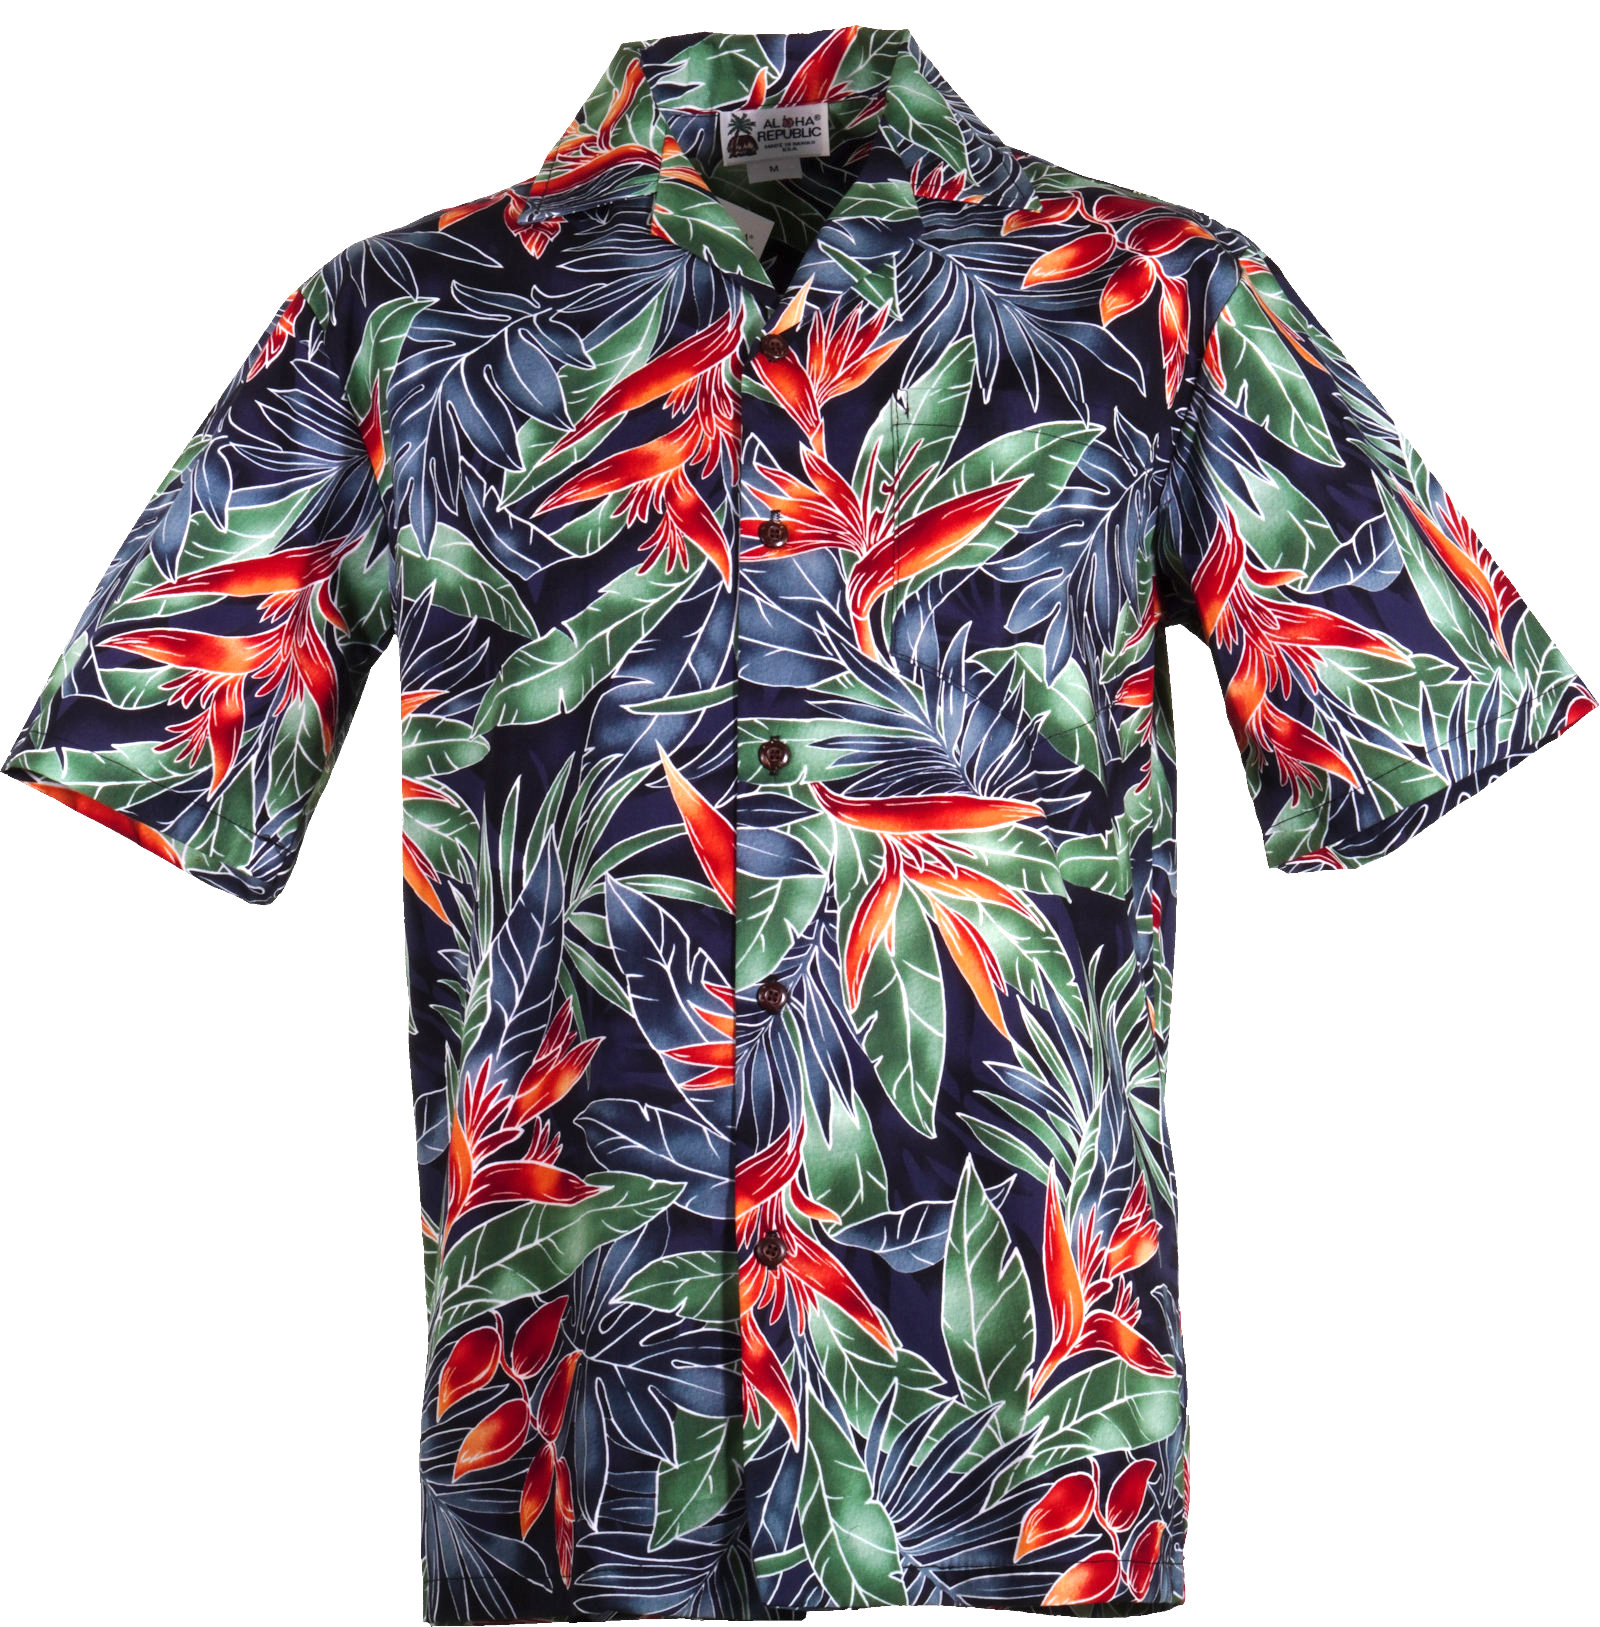 Original Hawaiihemd -Korben Dallas-